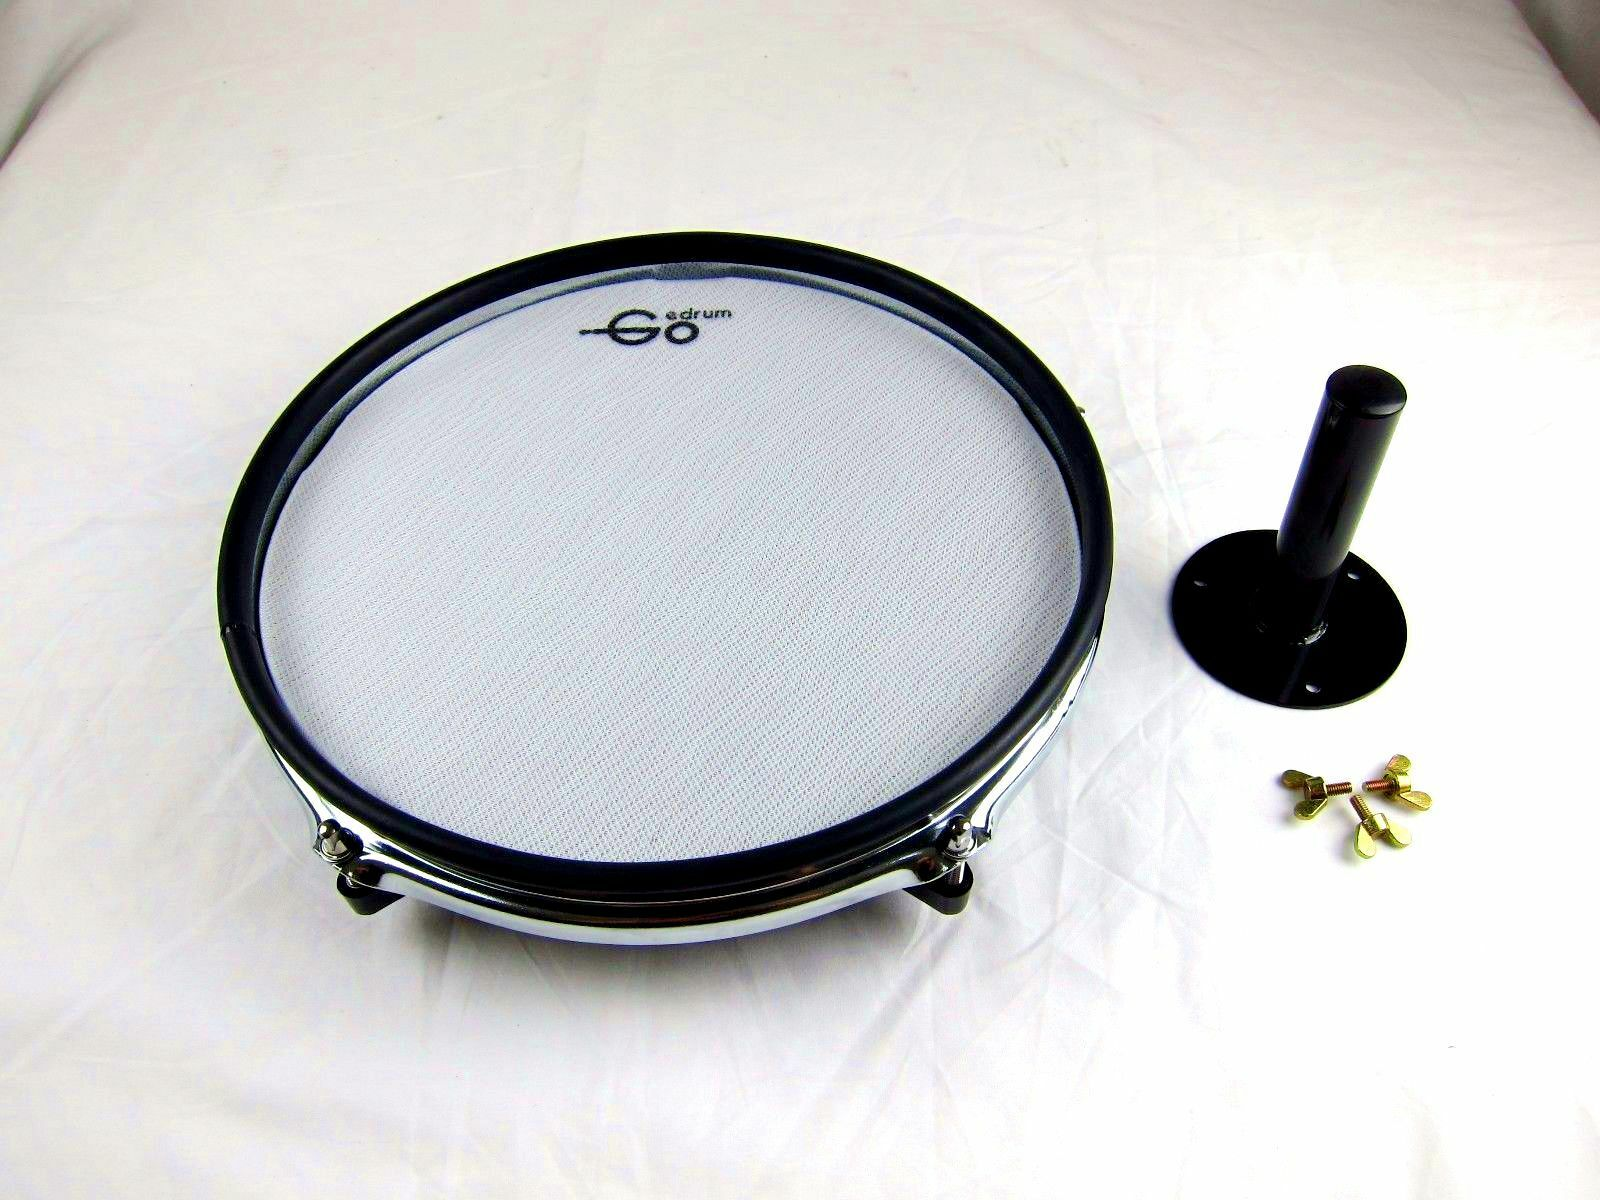 Goedrum 10  Electronic Drum Pad with Rim Silencer   Single Trigger   Mesh Head